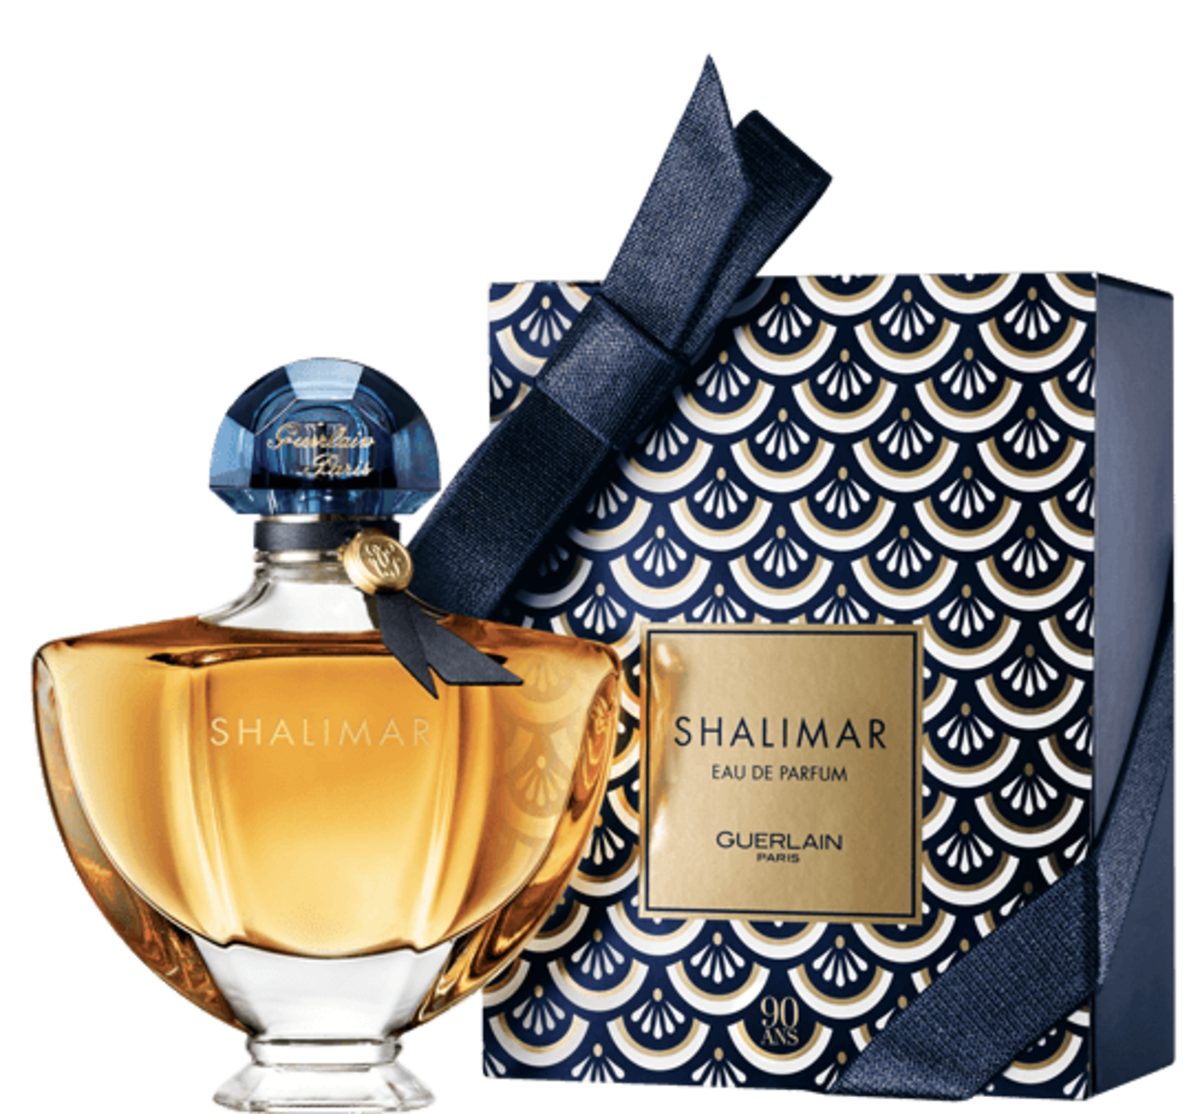 5 Amazing Guerlain Perfumes  To Create Your Unique Signature Scent